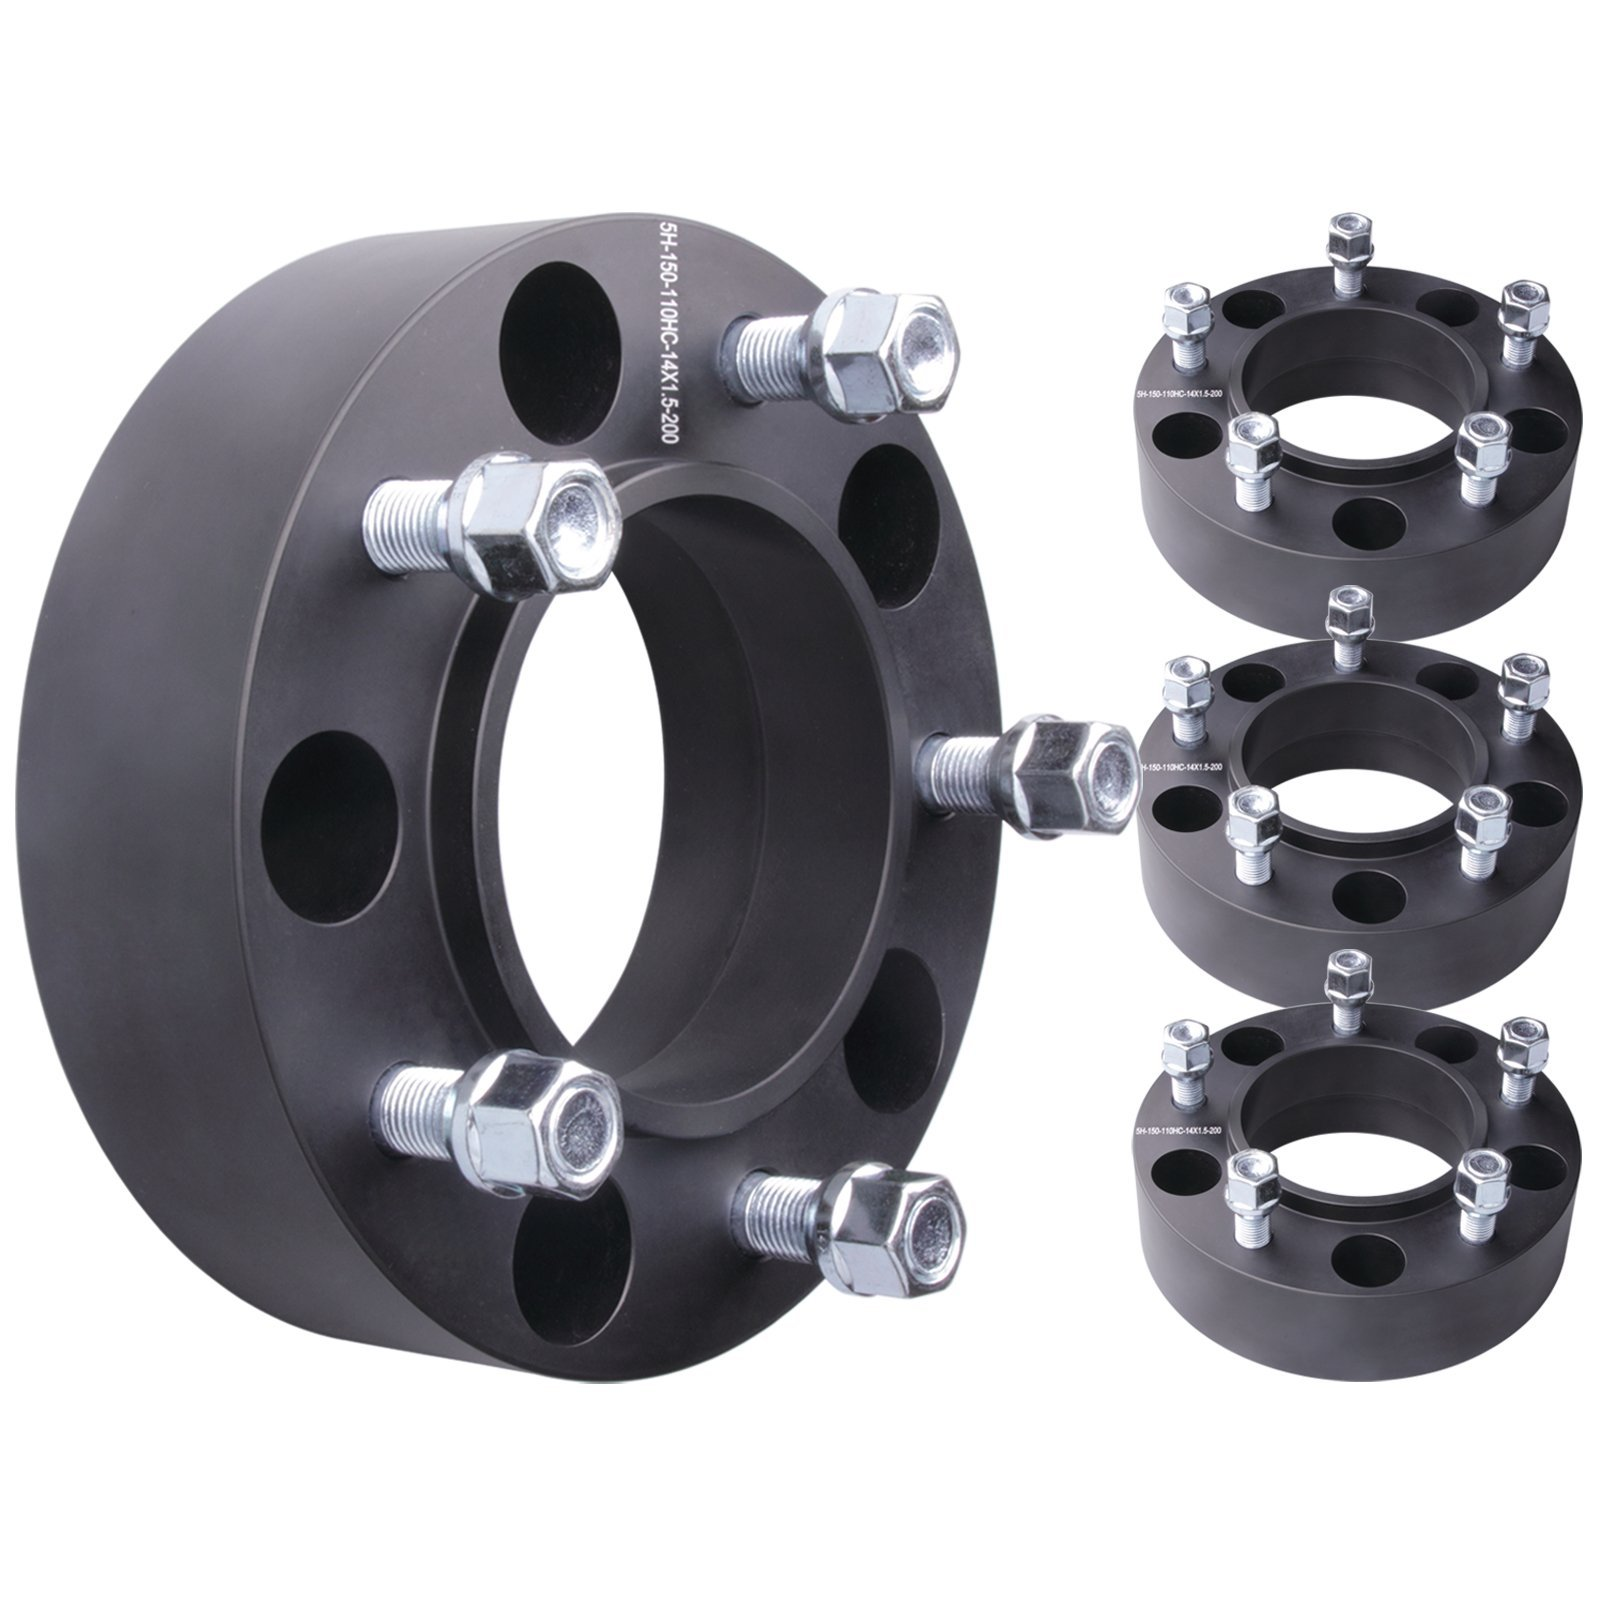 4pcs 2'' 5x150 to 5x150 Hubcentric Wheel Spacers Adapter for Toyota Tundra 2007-2016 Hub Bore 110mm 14x1.5 Studs 6061 T6 Billet Aluminum (07-) Black